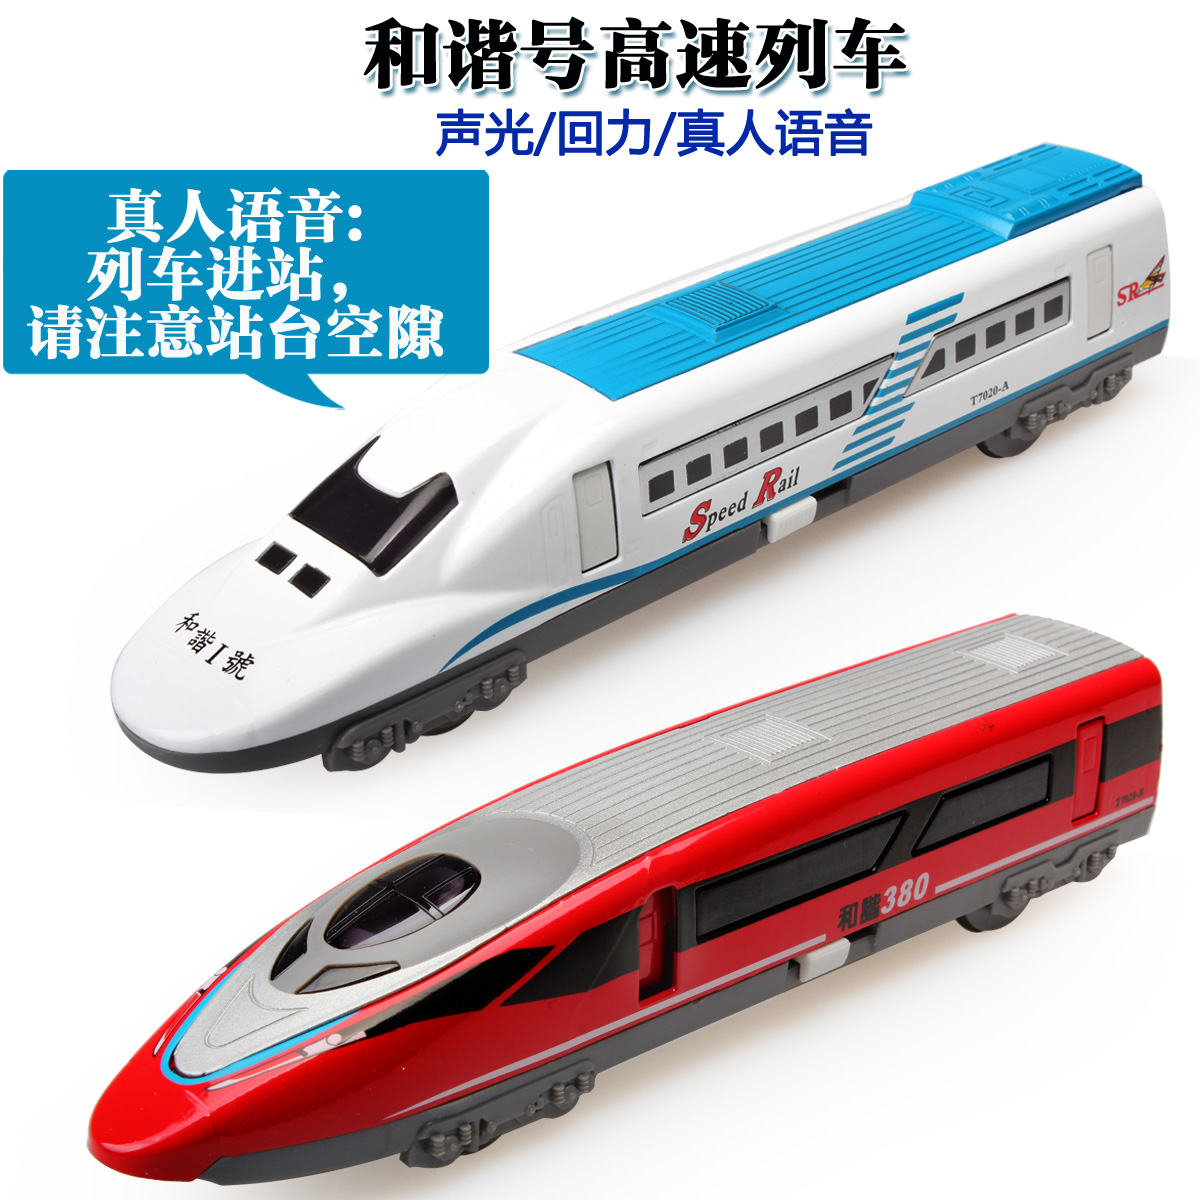 Diya more alloy car models children's toy train harmony emu model of chinese high alloy model